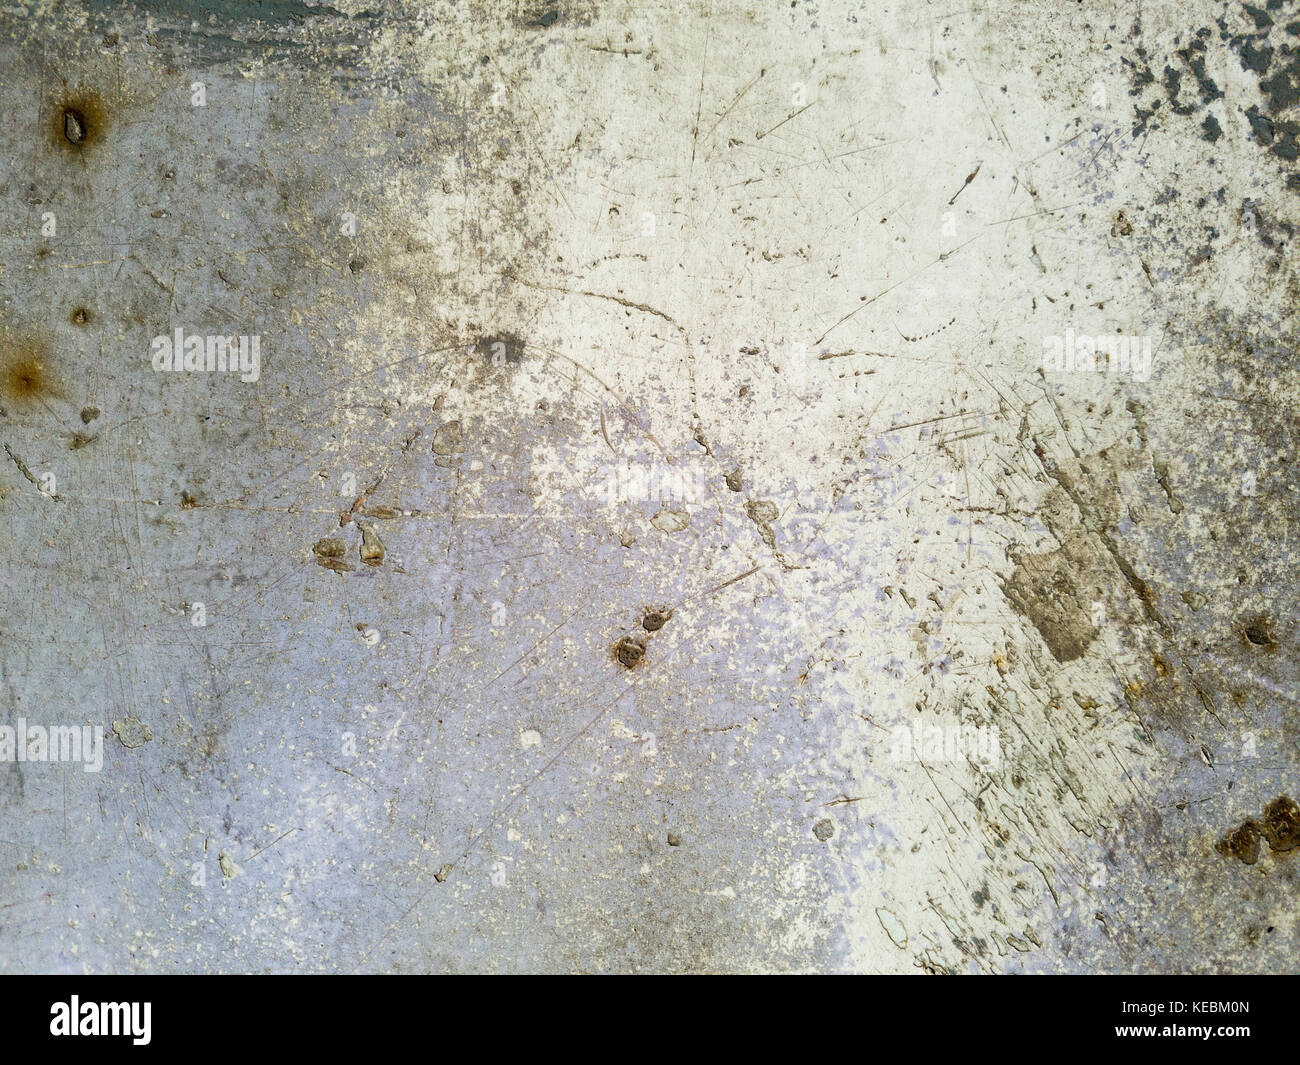 Distressed Dirty Background - Stock Image